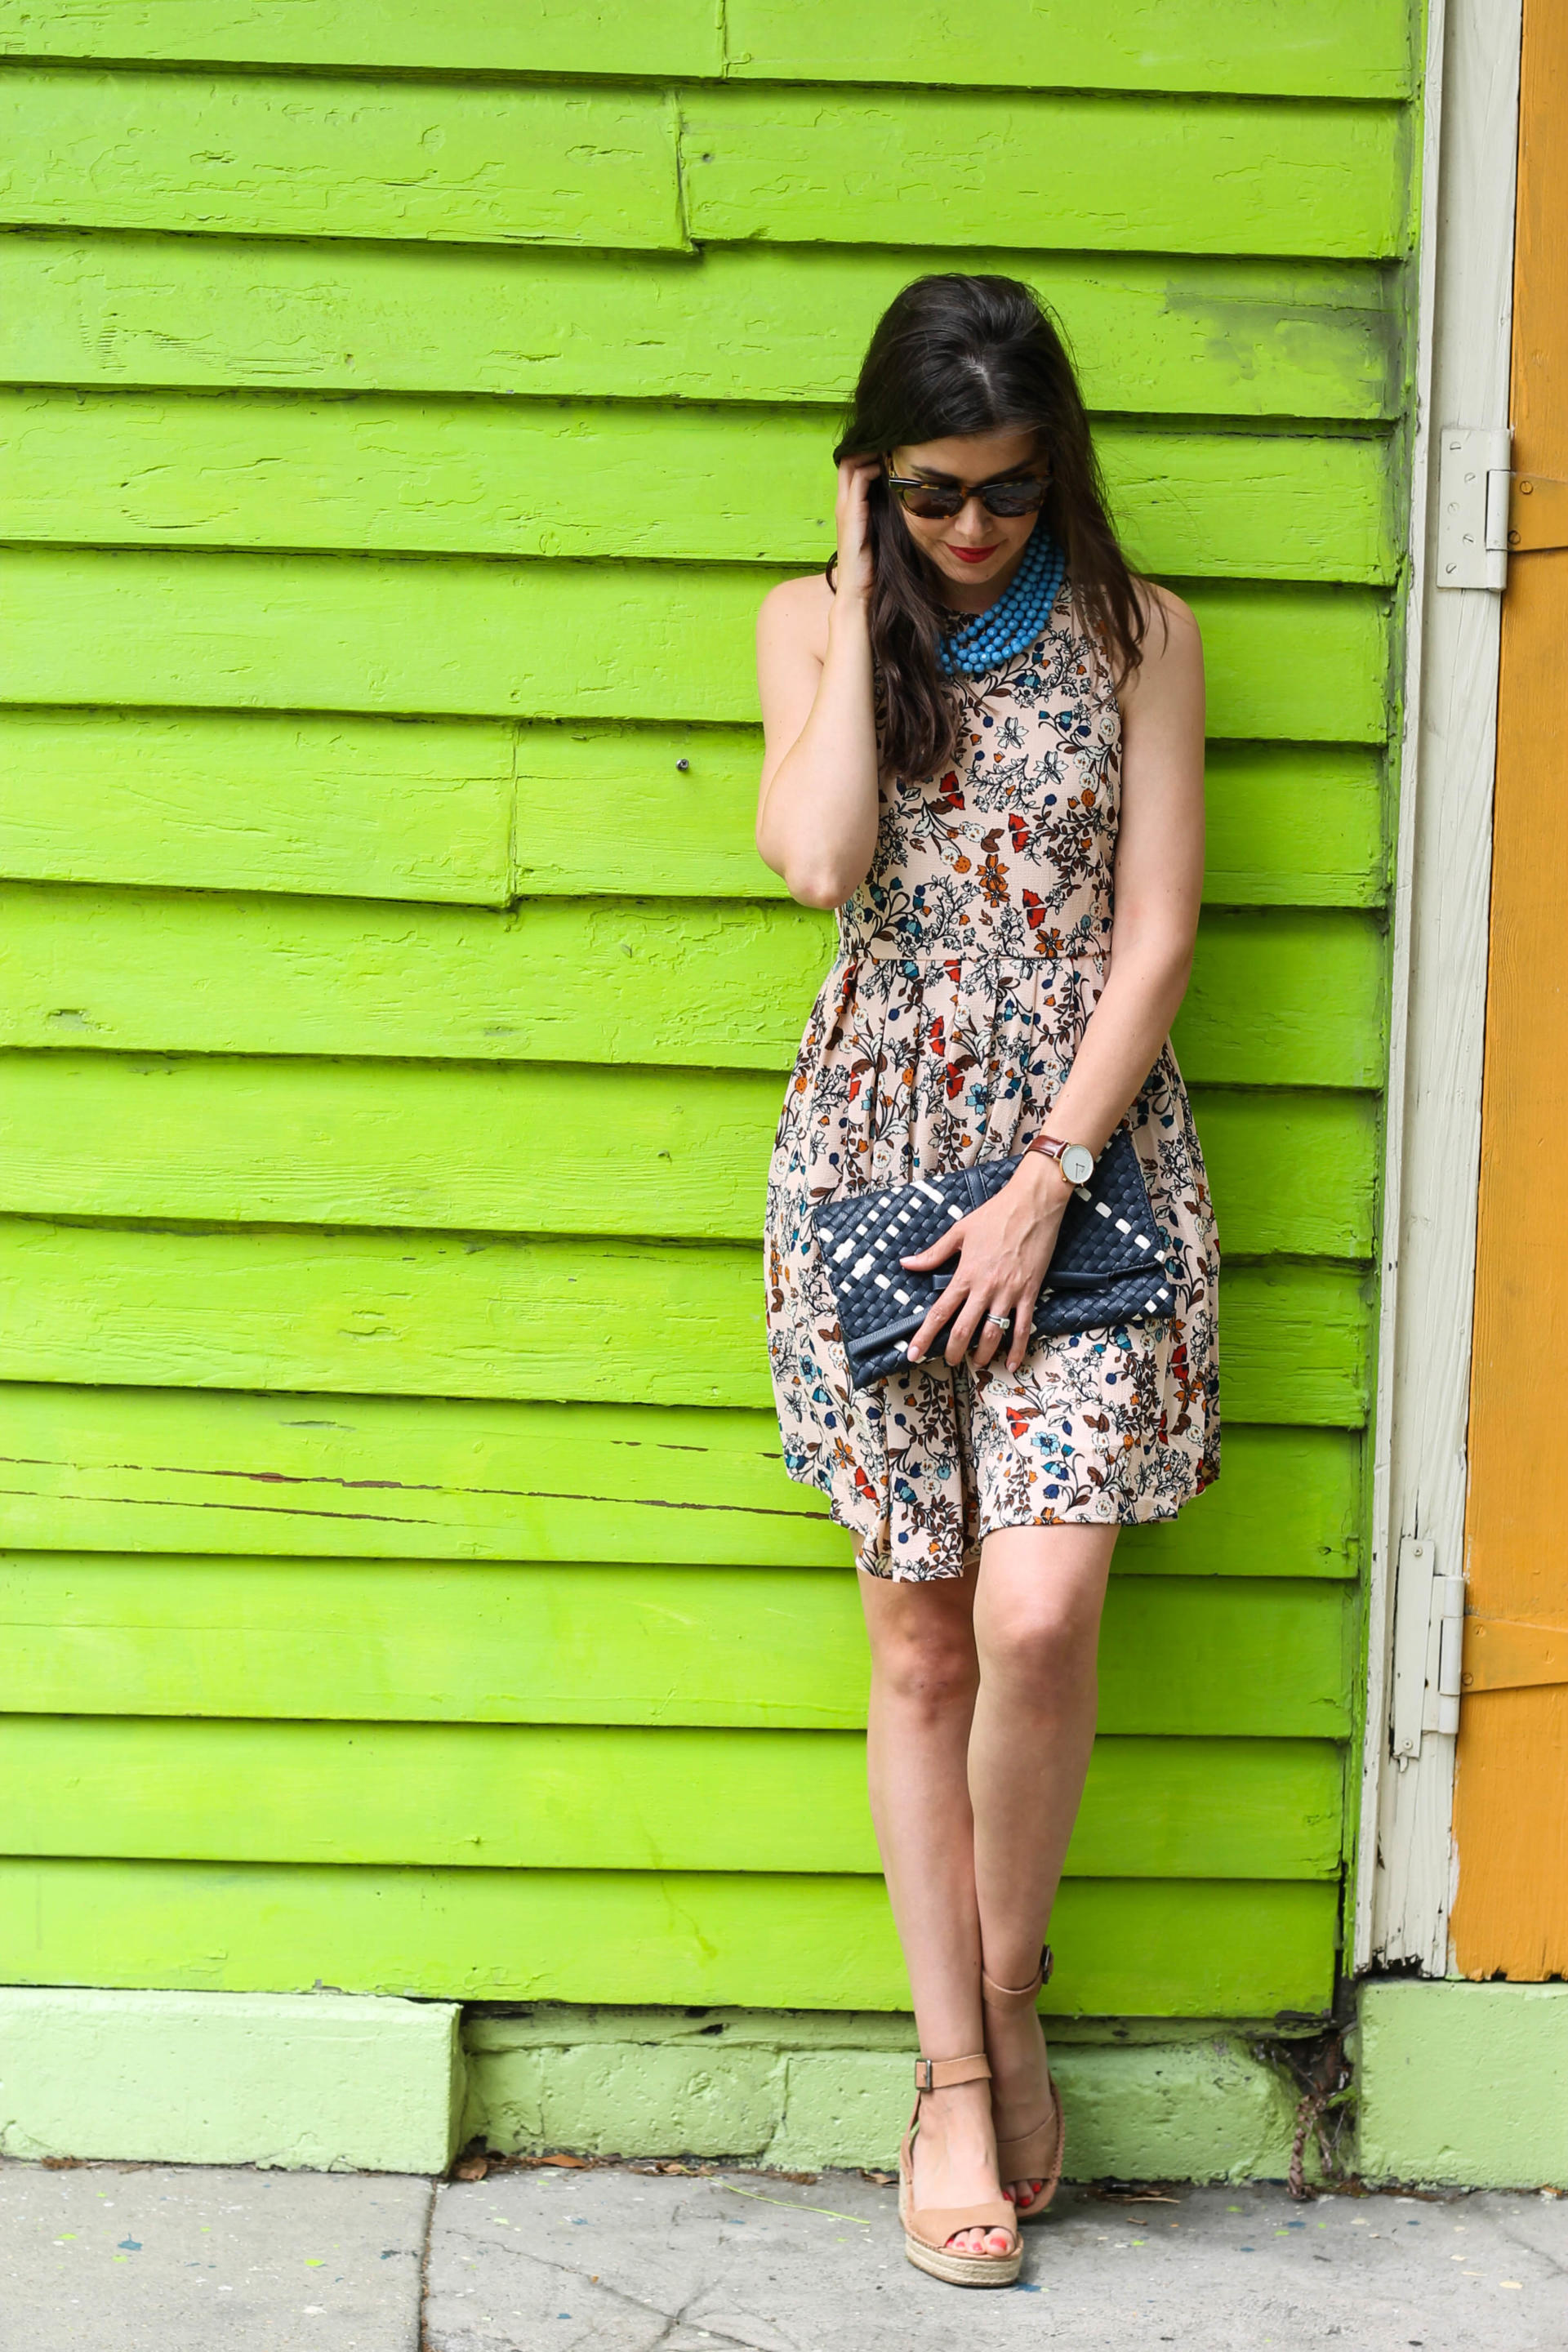 Spring Dresses Under $50 - The Best Spring Dresses Under $50 by New York style blogger Style Waltz